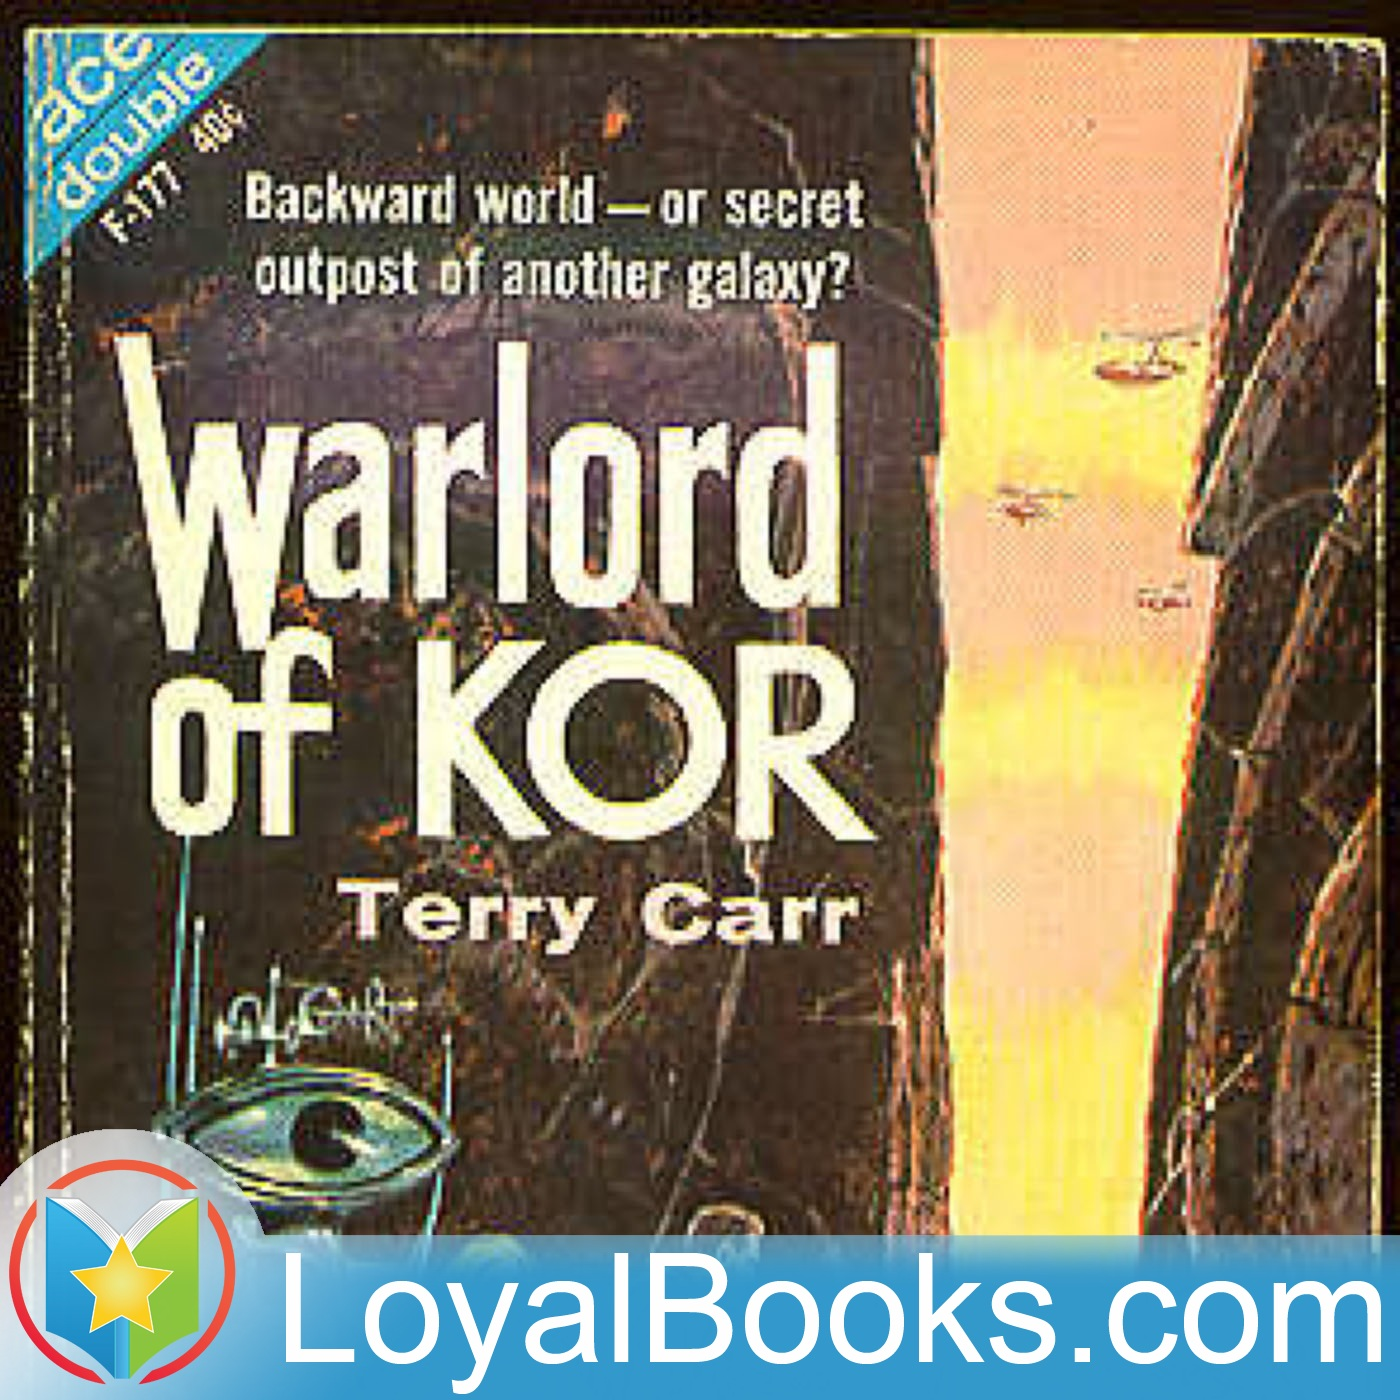 <![CDATA[Warlord of Kor by Terry Carr]]>